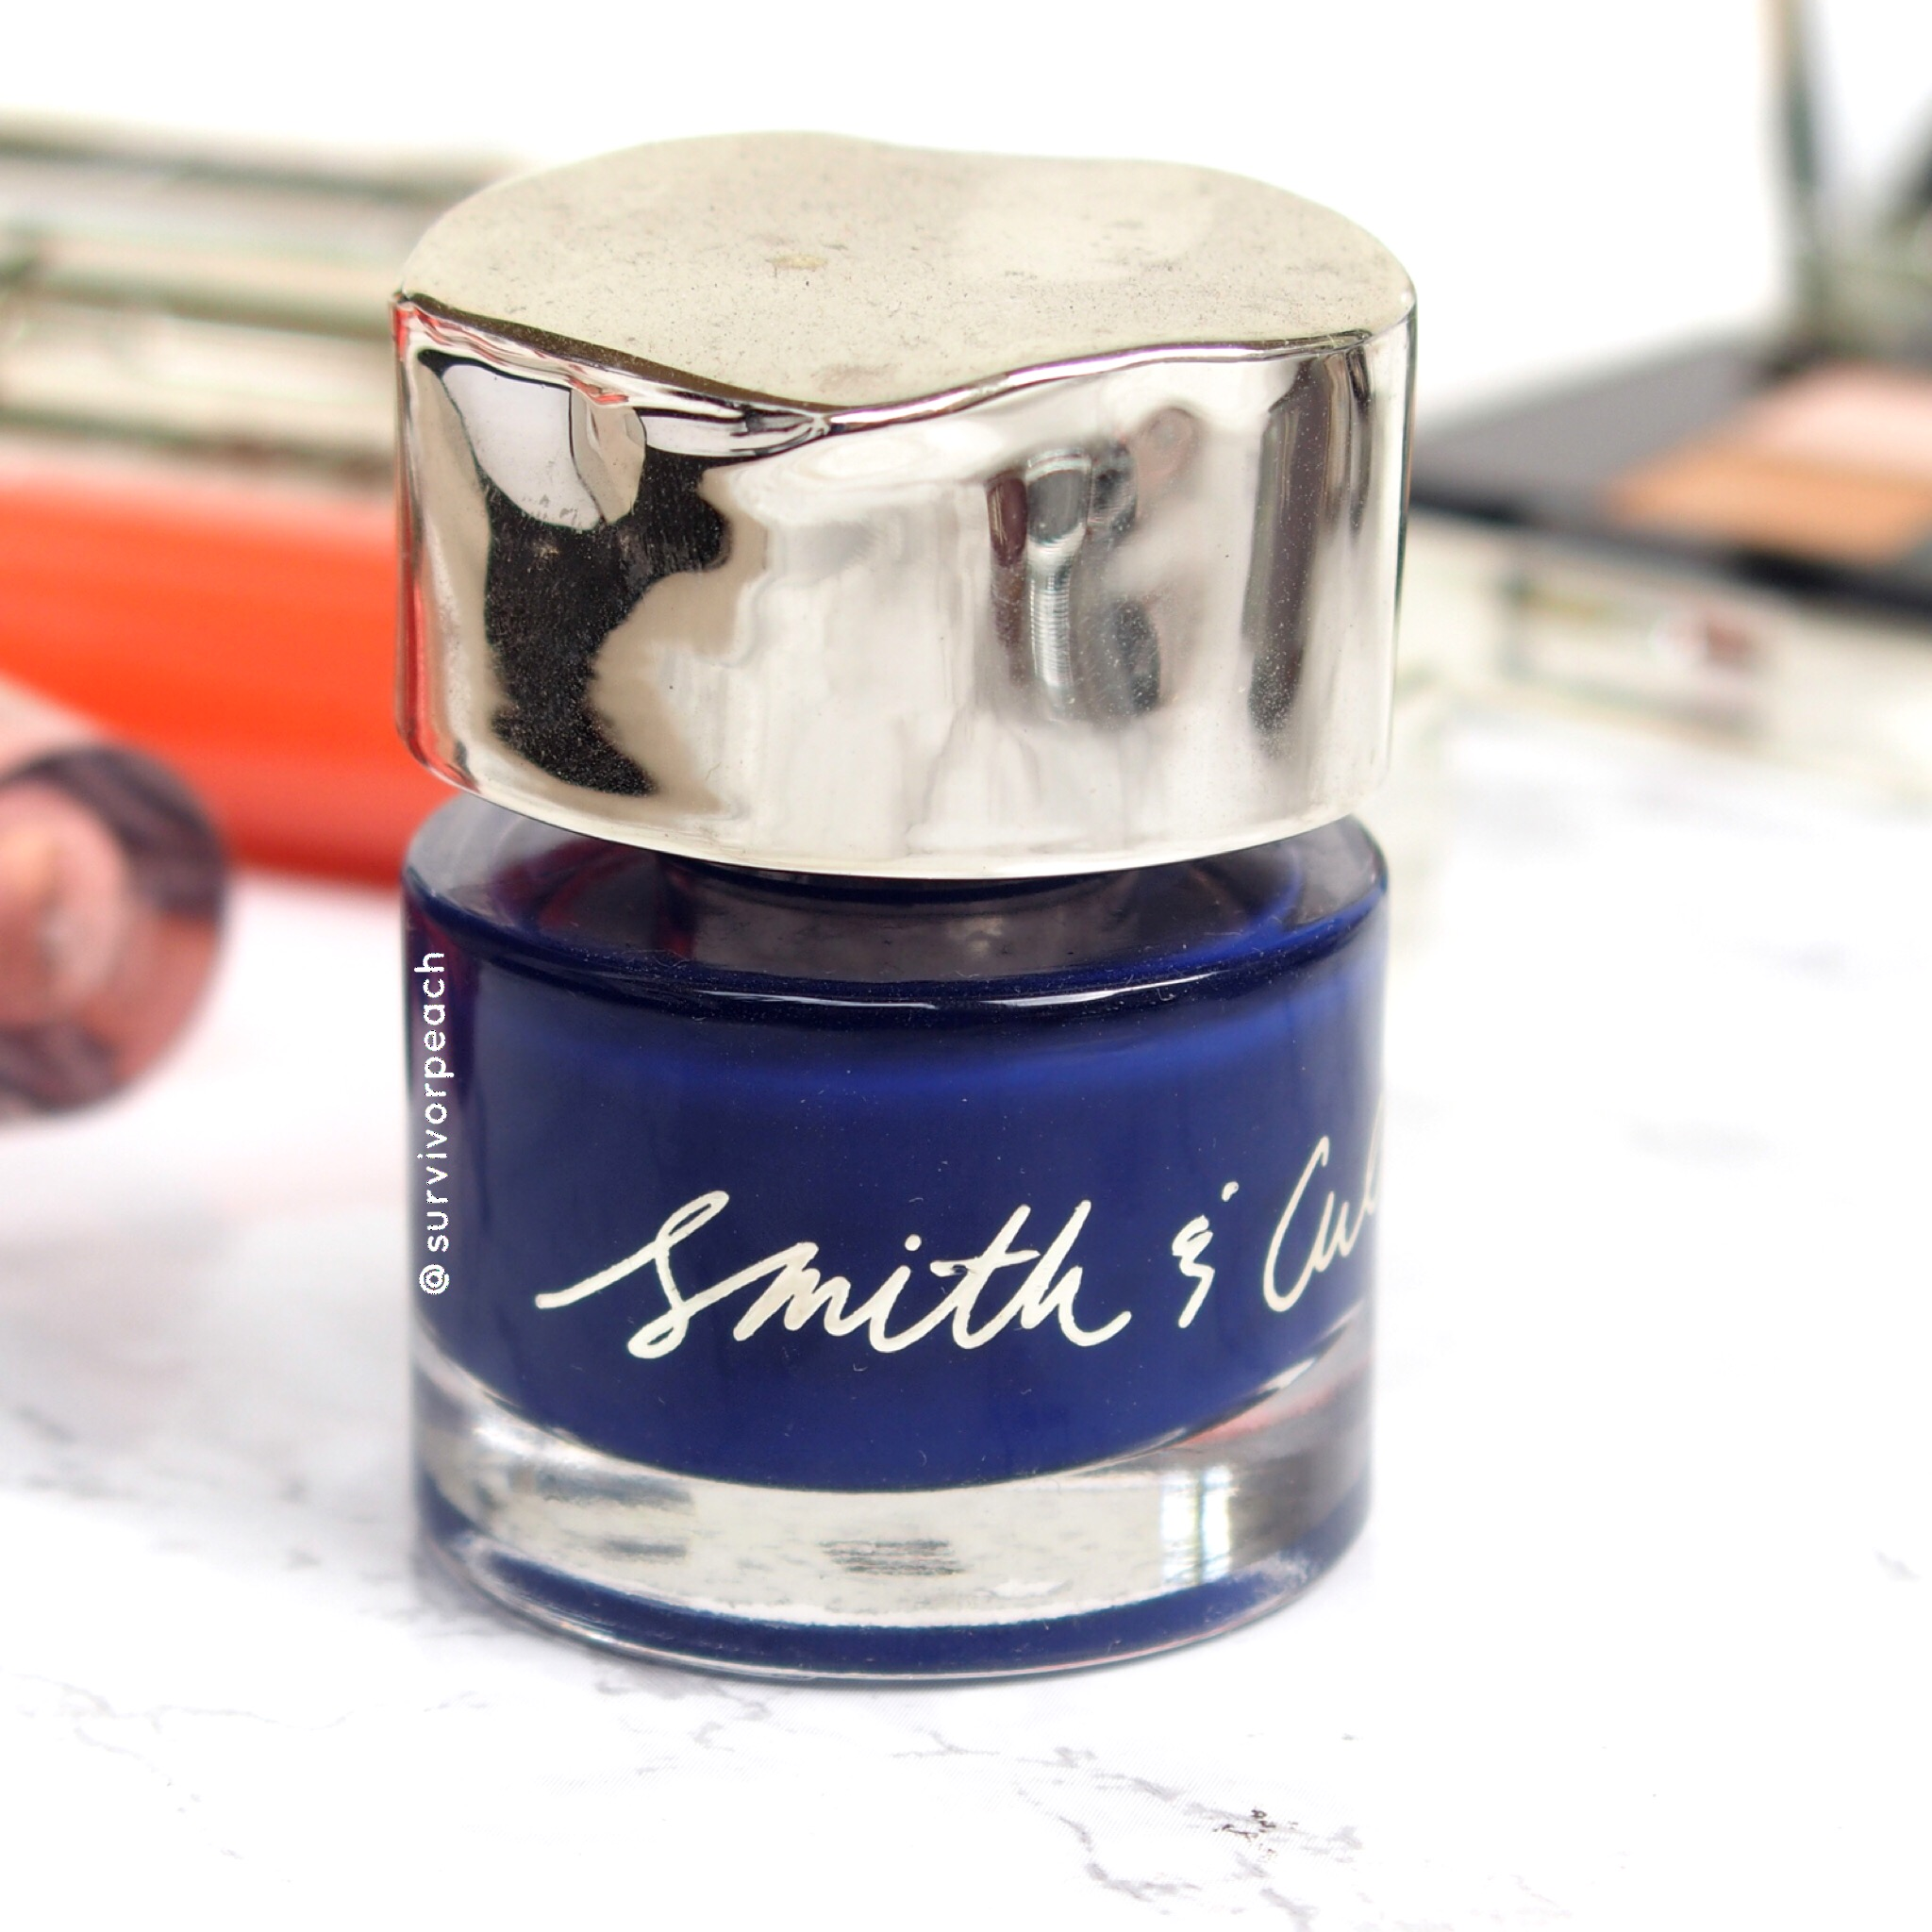 Smith & Cult Nail Polish in Kings and Thieves.